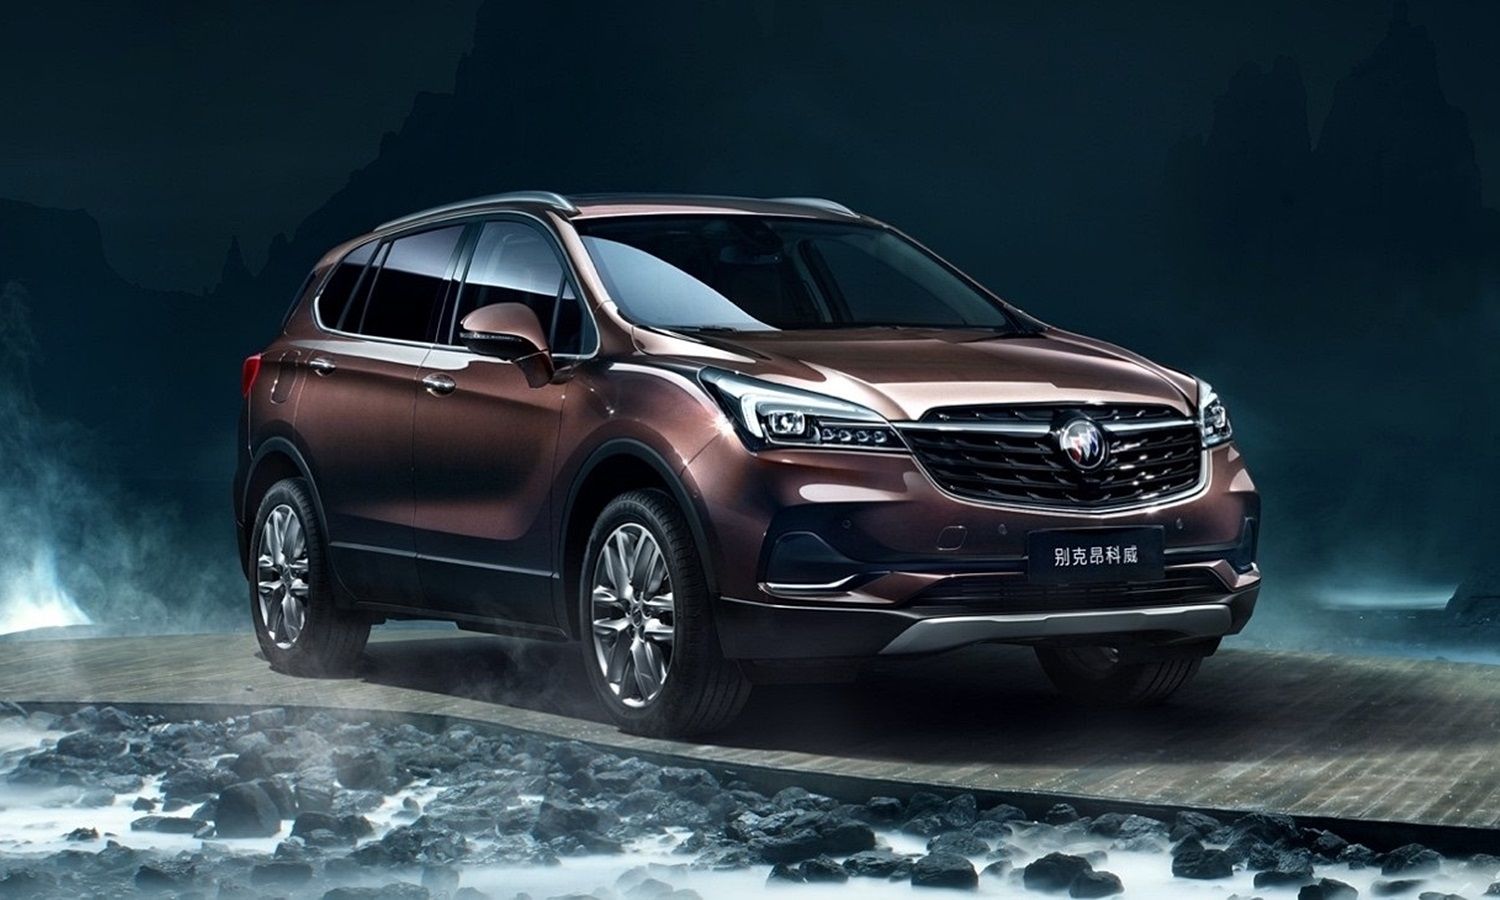 Buick Envision Set For Refresh This Year   Gm Authority New 2022 Buick Envision Reviews, Dimensions, Colors